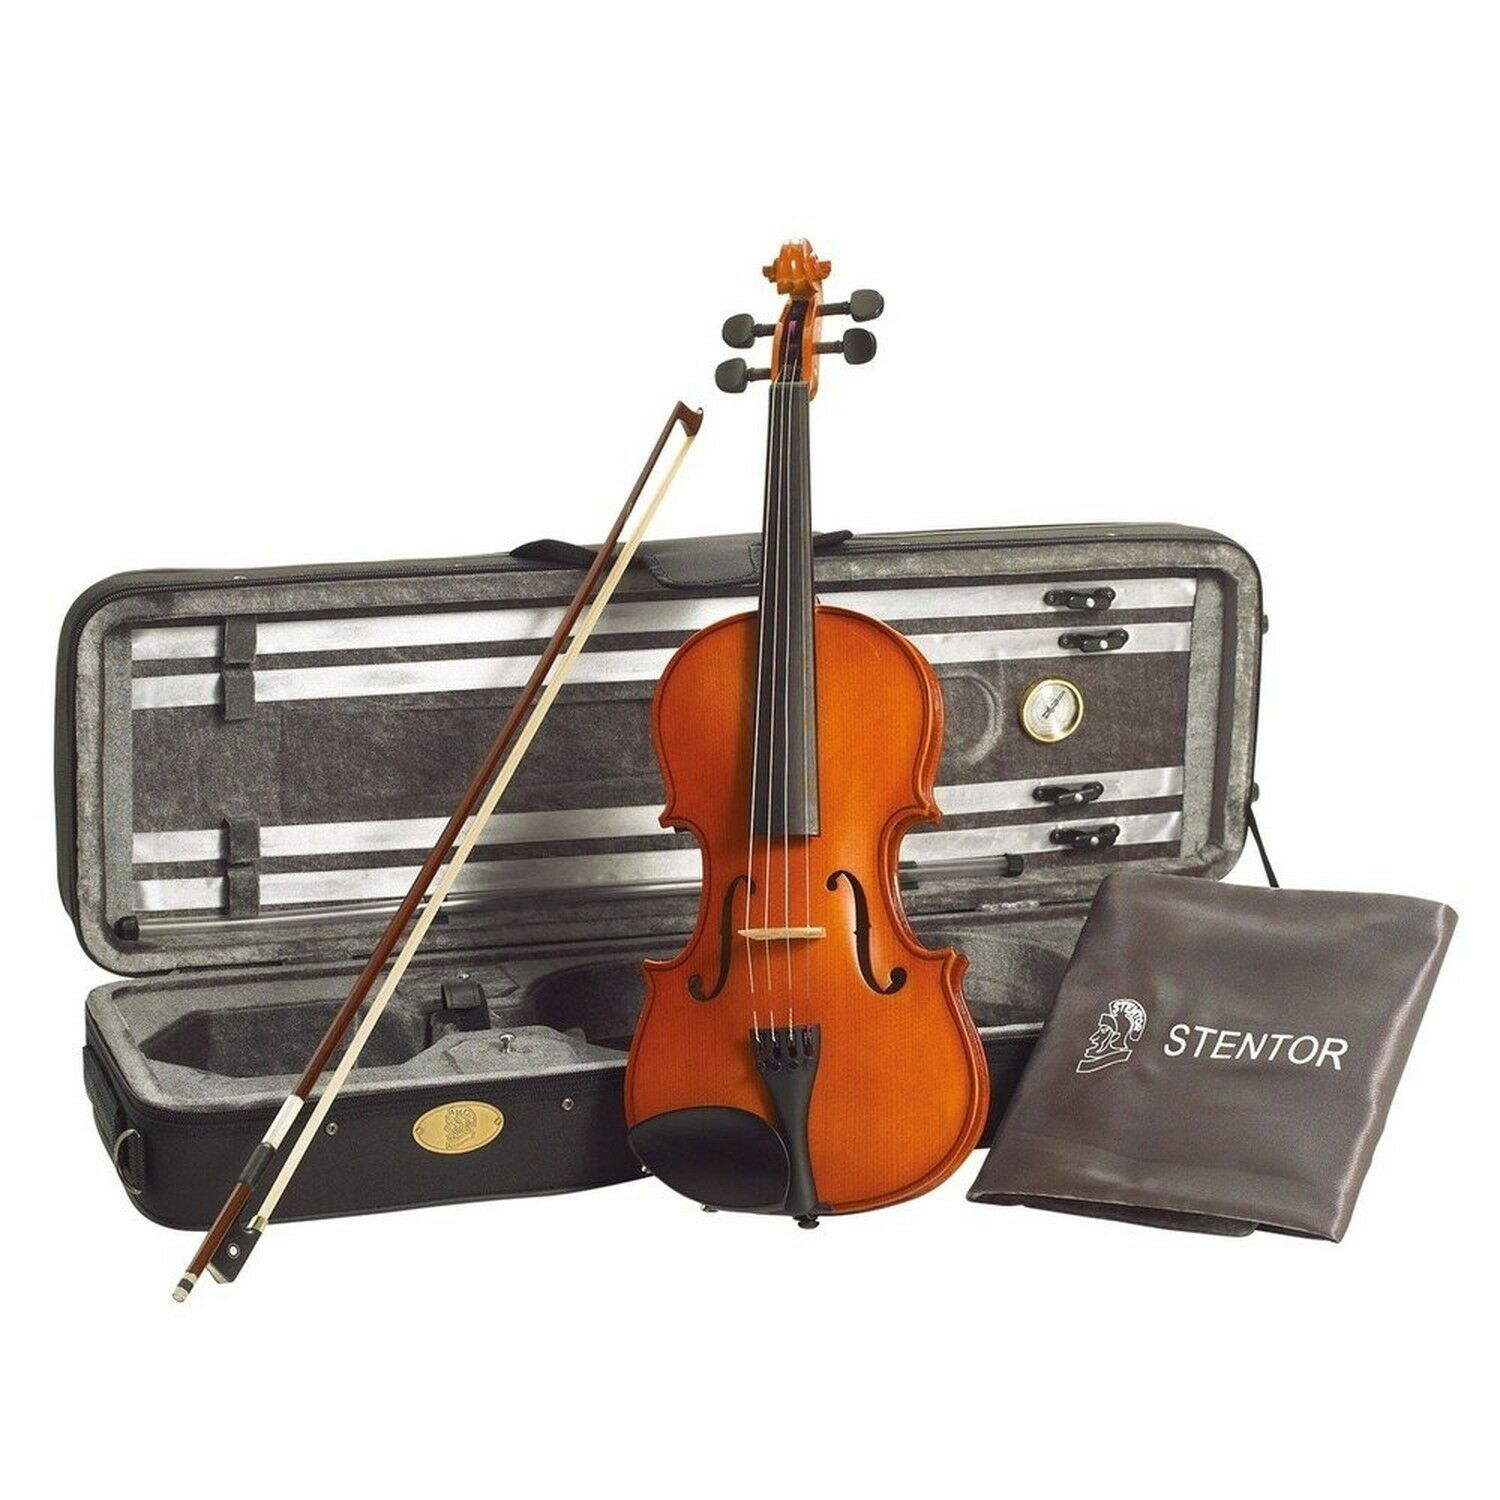 Violin 4 4 Conservatoire Il Set with Bow and Case Handmade